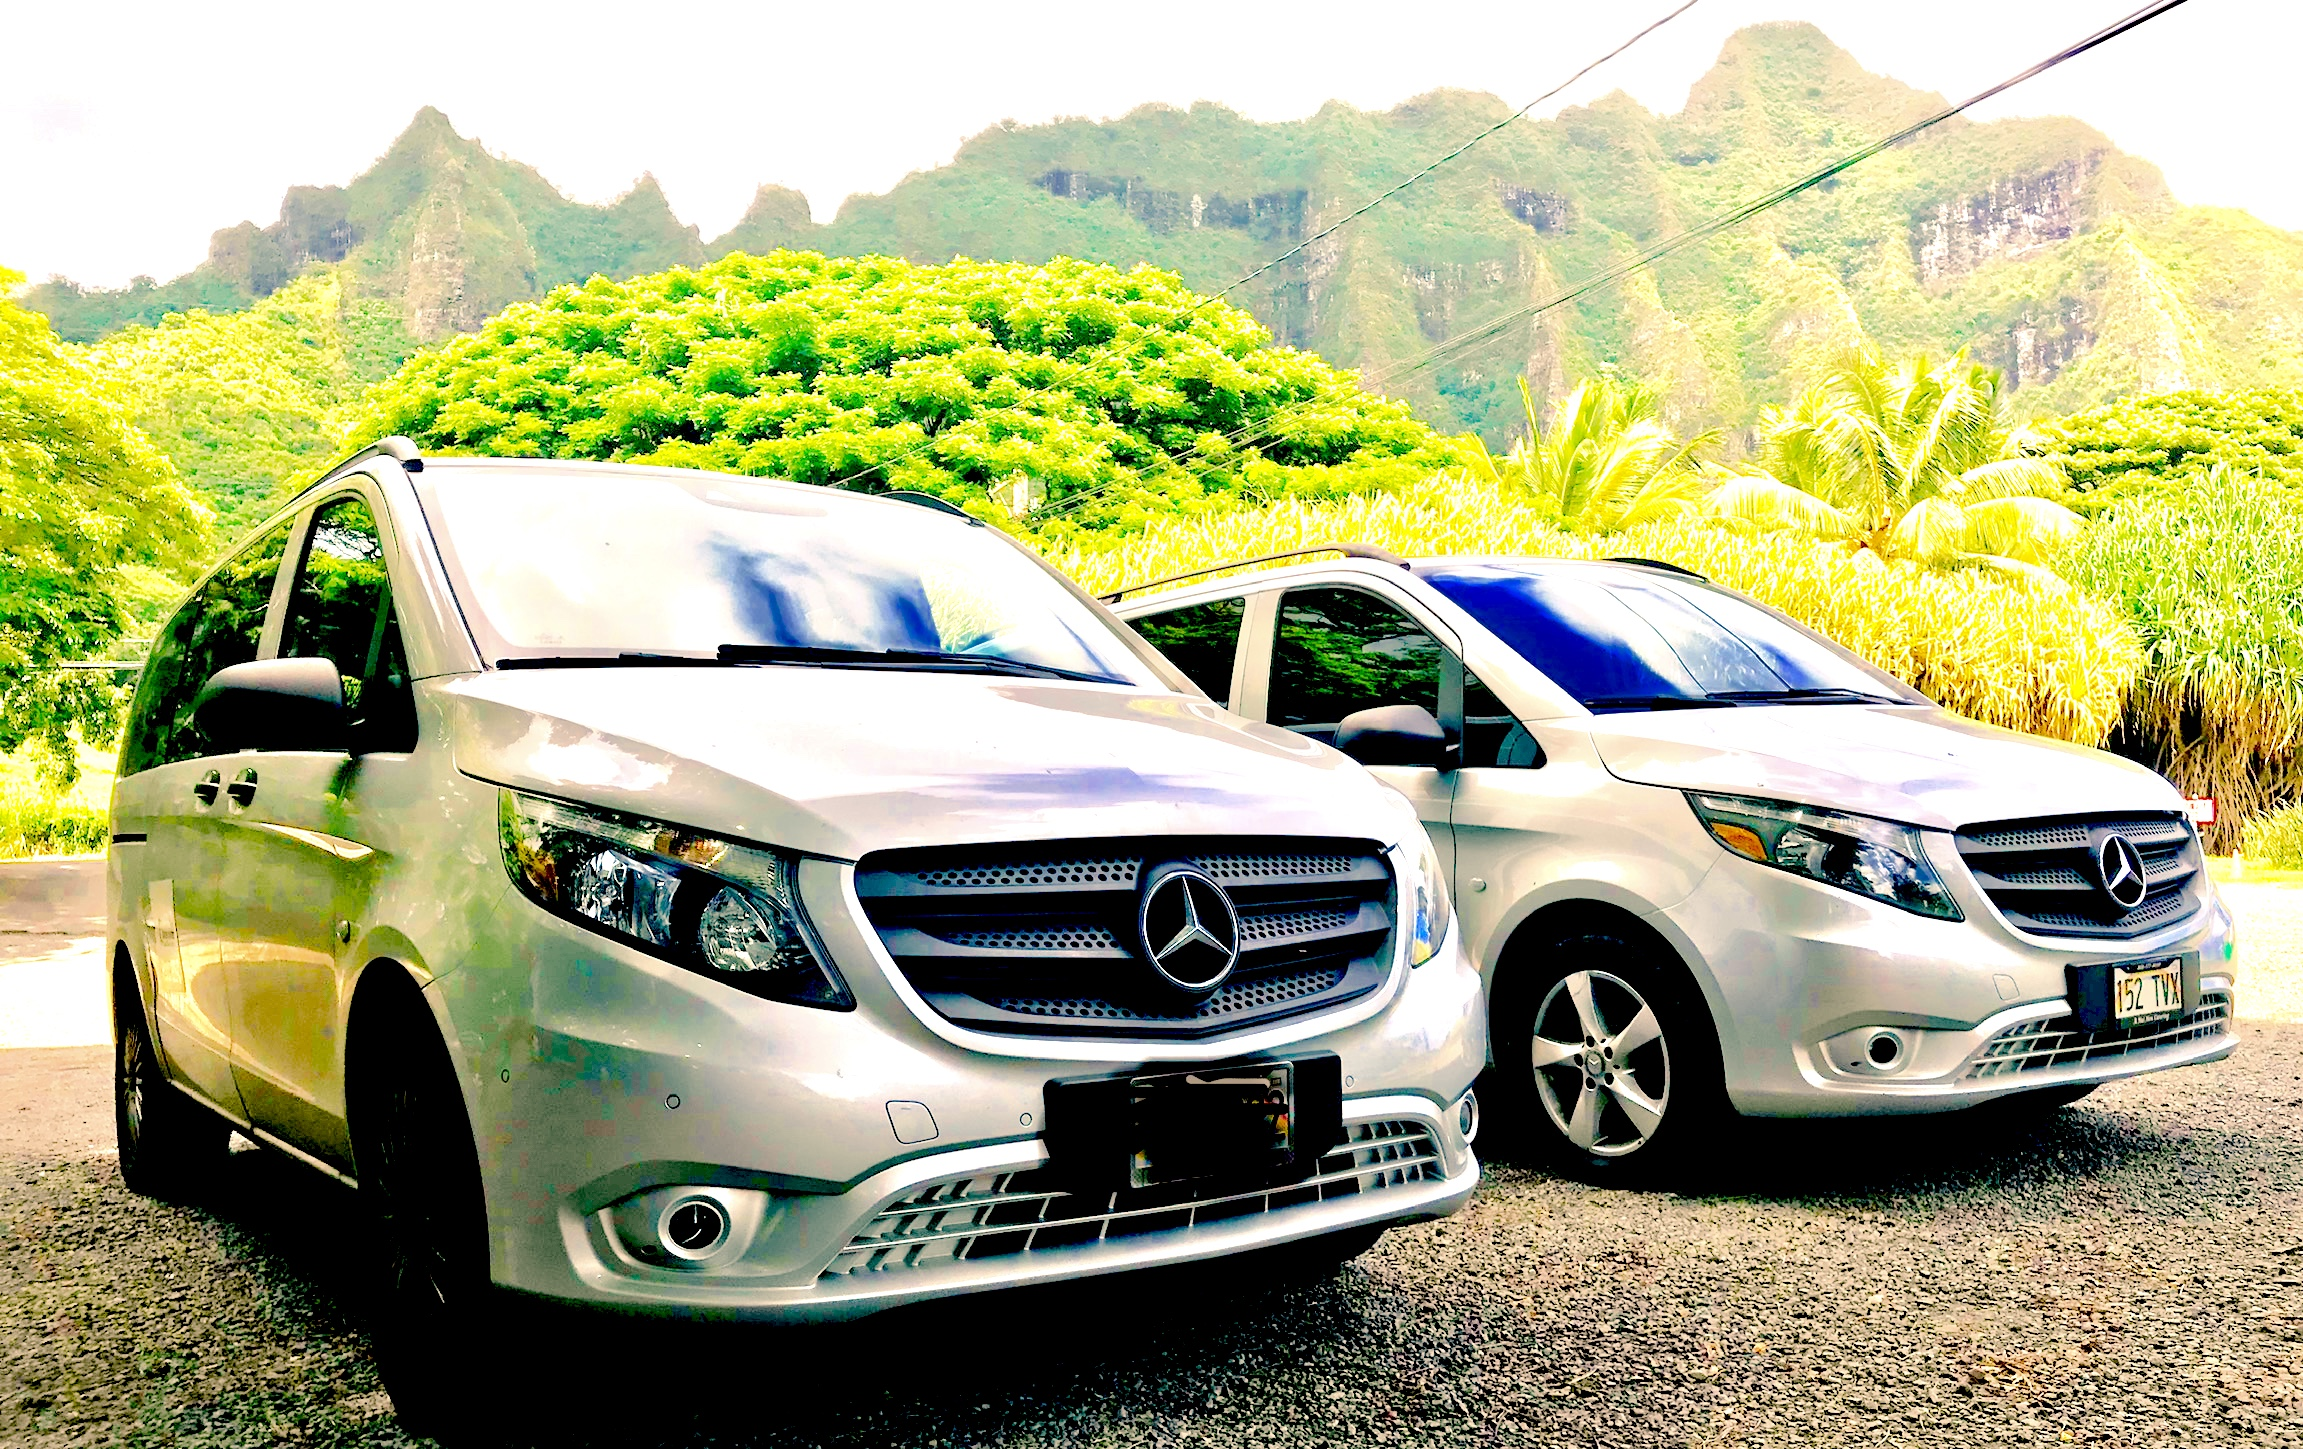 DanielsHawaii Tour Vehicles